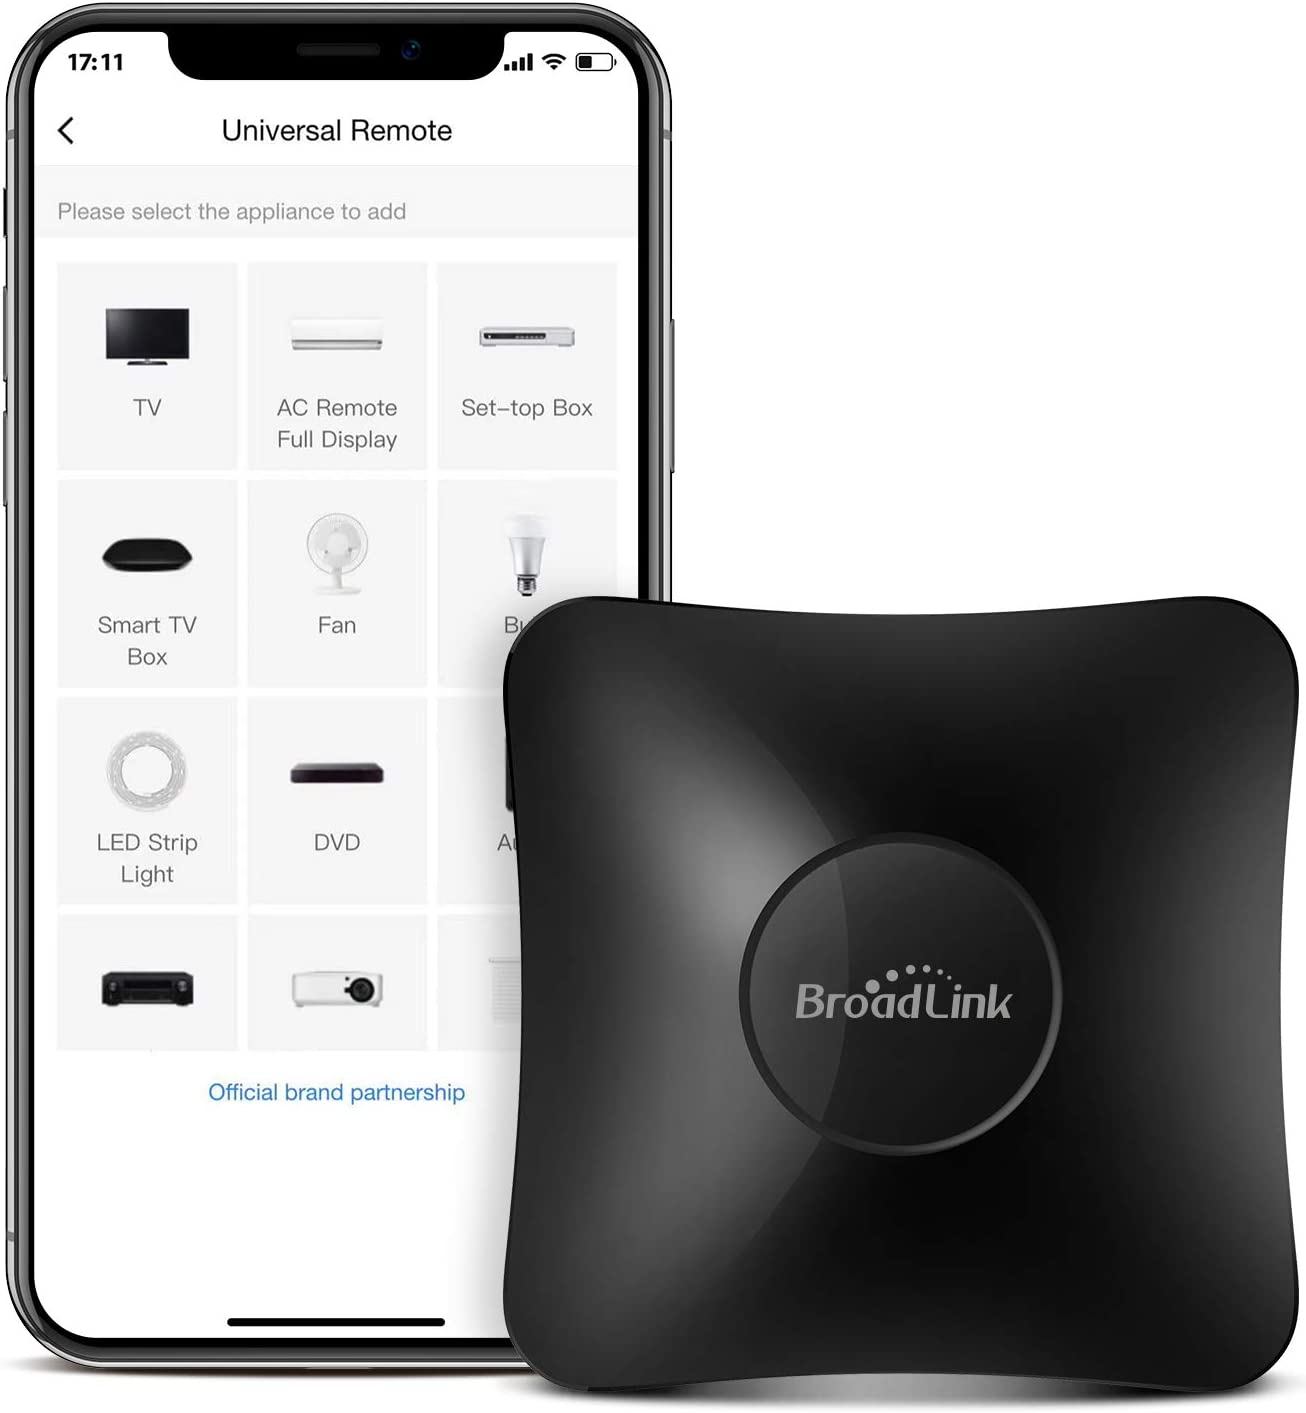 BroadLink IR/RF Smart Home Hub-WiFi IR/RF Blaster for Home Automation, TV, Curtain, Shades Remote, Smart AC Controller, Works with Alexa, Google Assistant, IFTTT (RM4 pro) - -